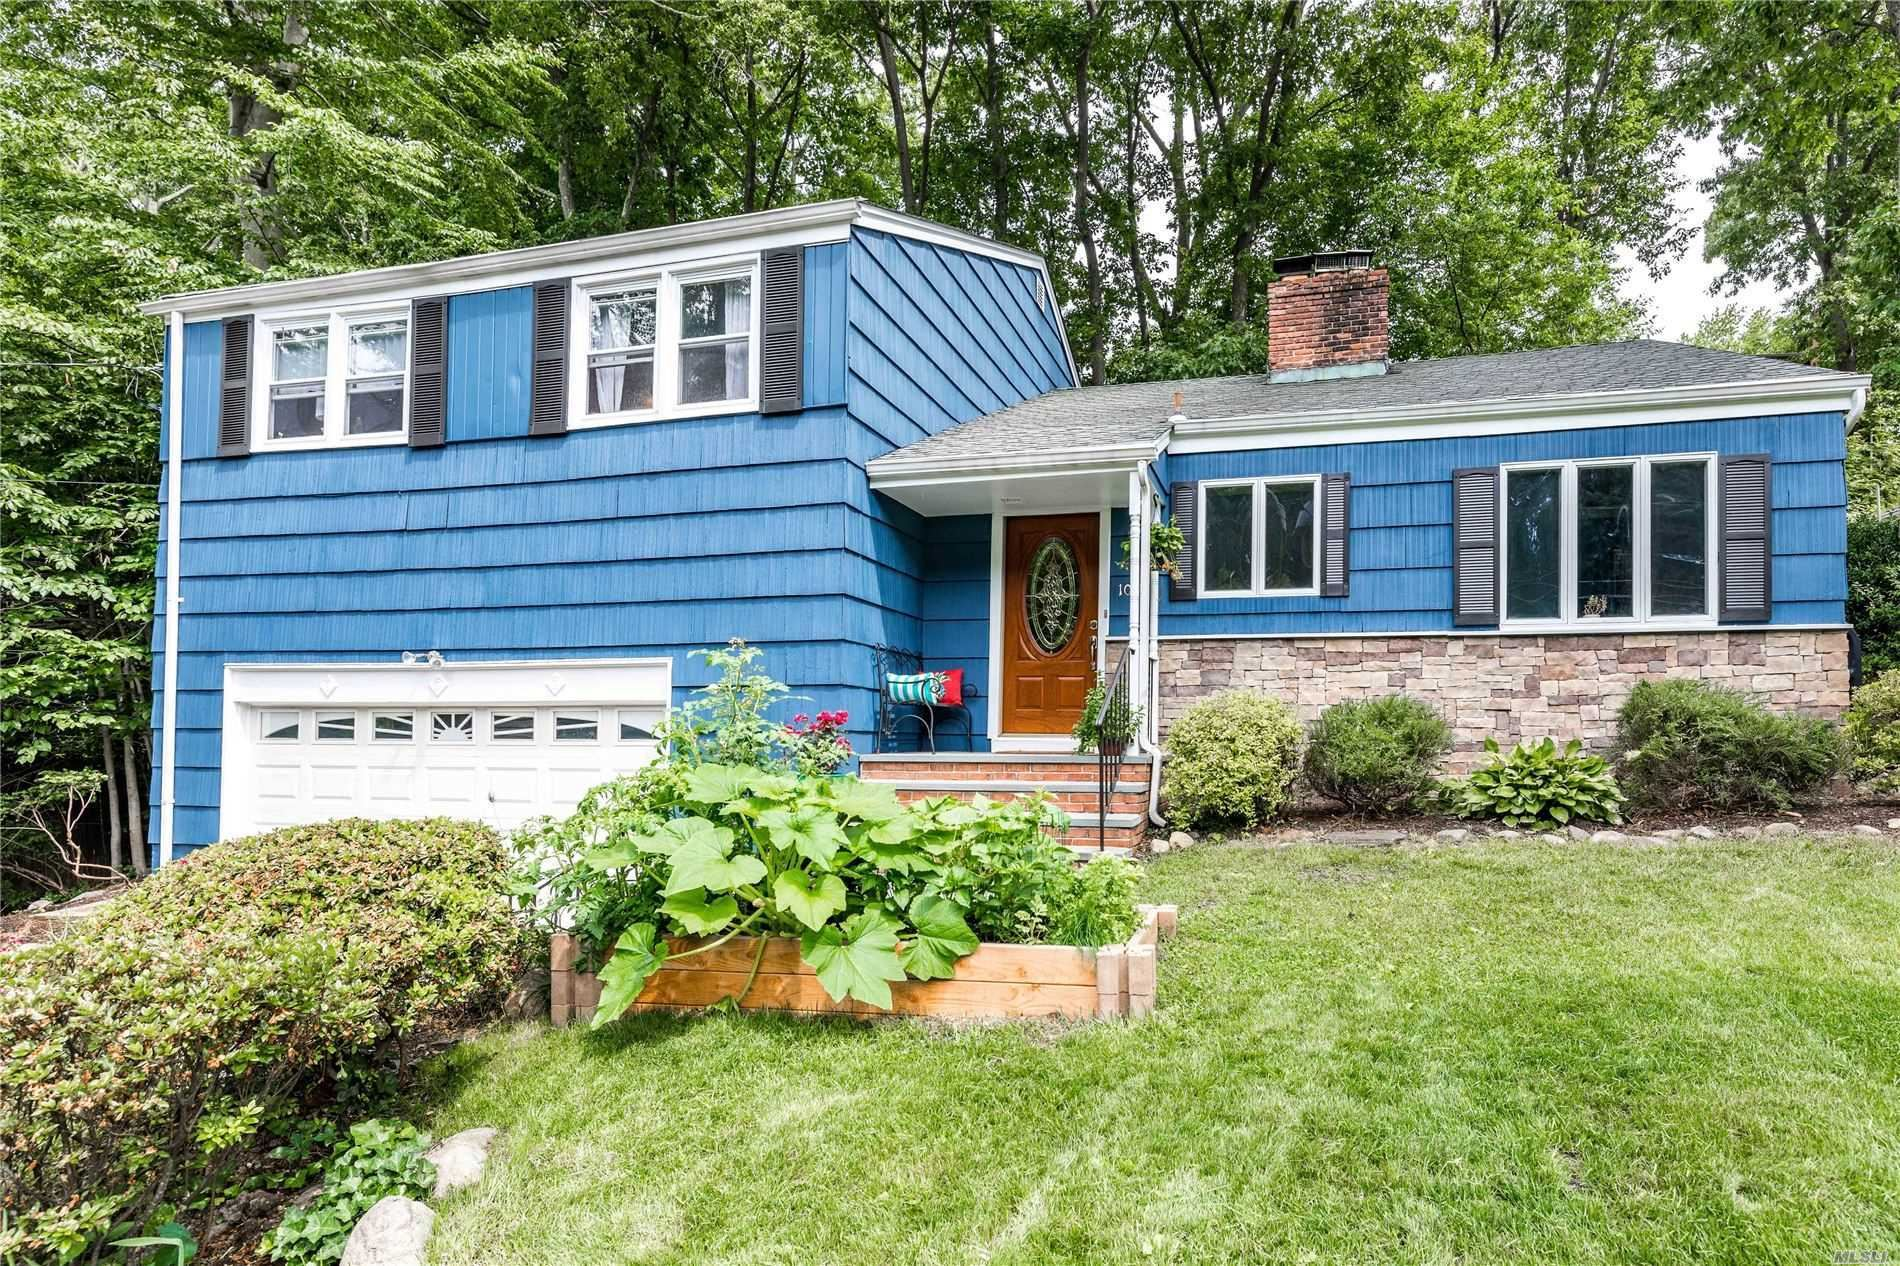 103 Abbott Dr, Huntington, NY 11743 - MLS#: 3226483